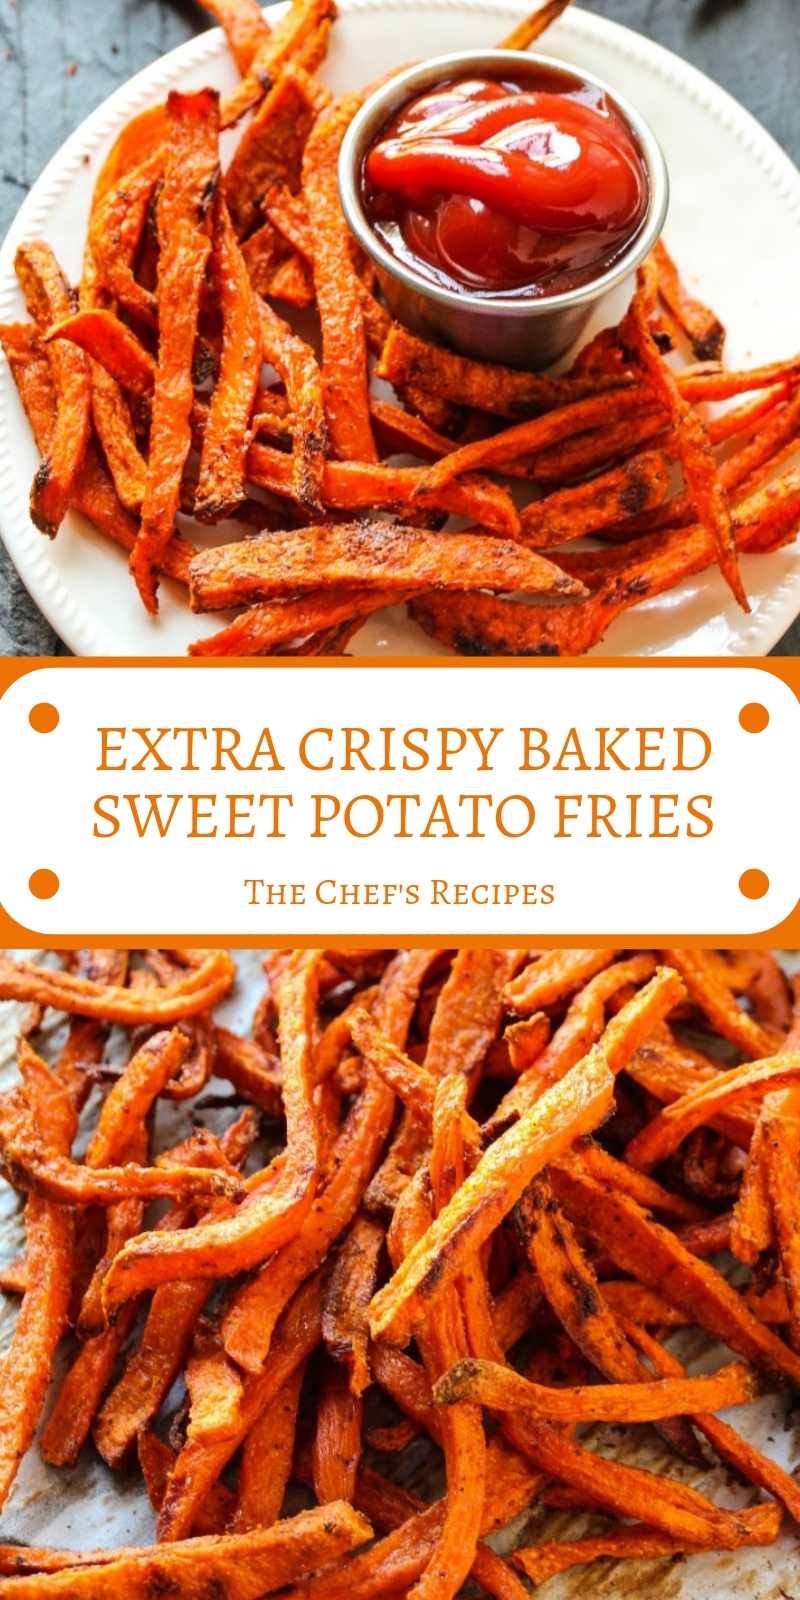 EXTRA CRISPY BAKED SWEET POTATO FRIES